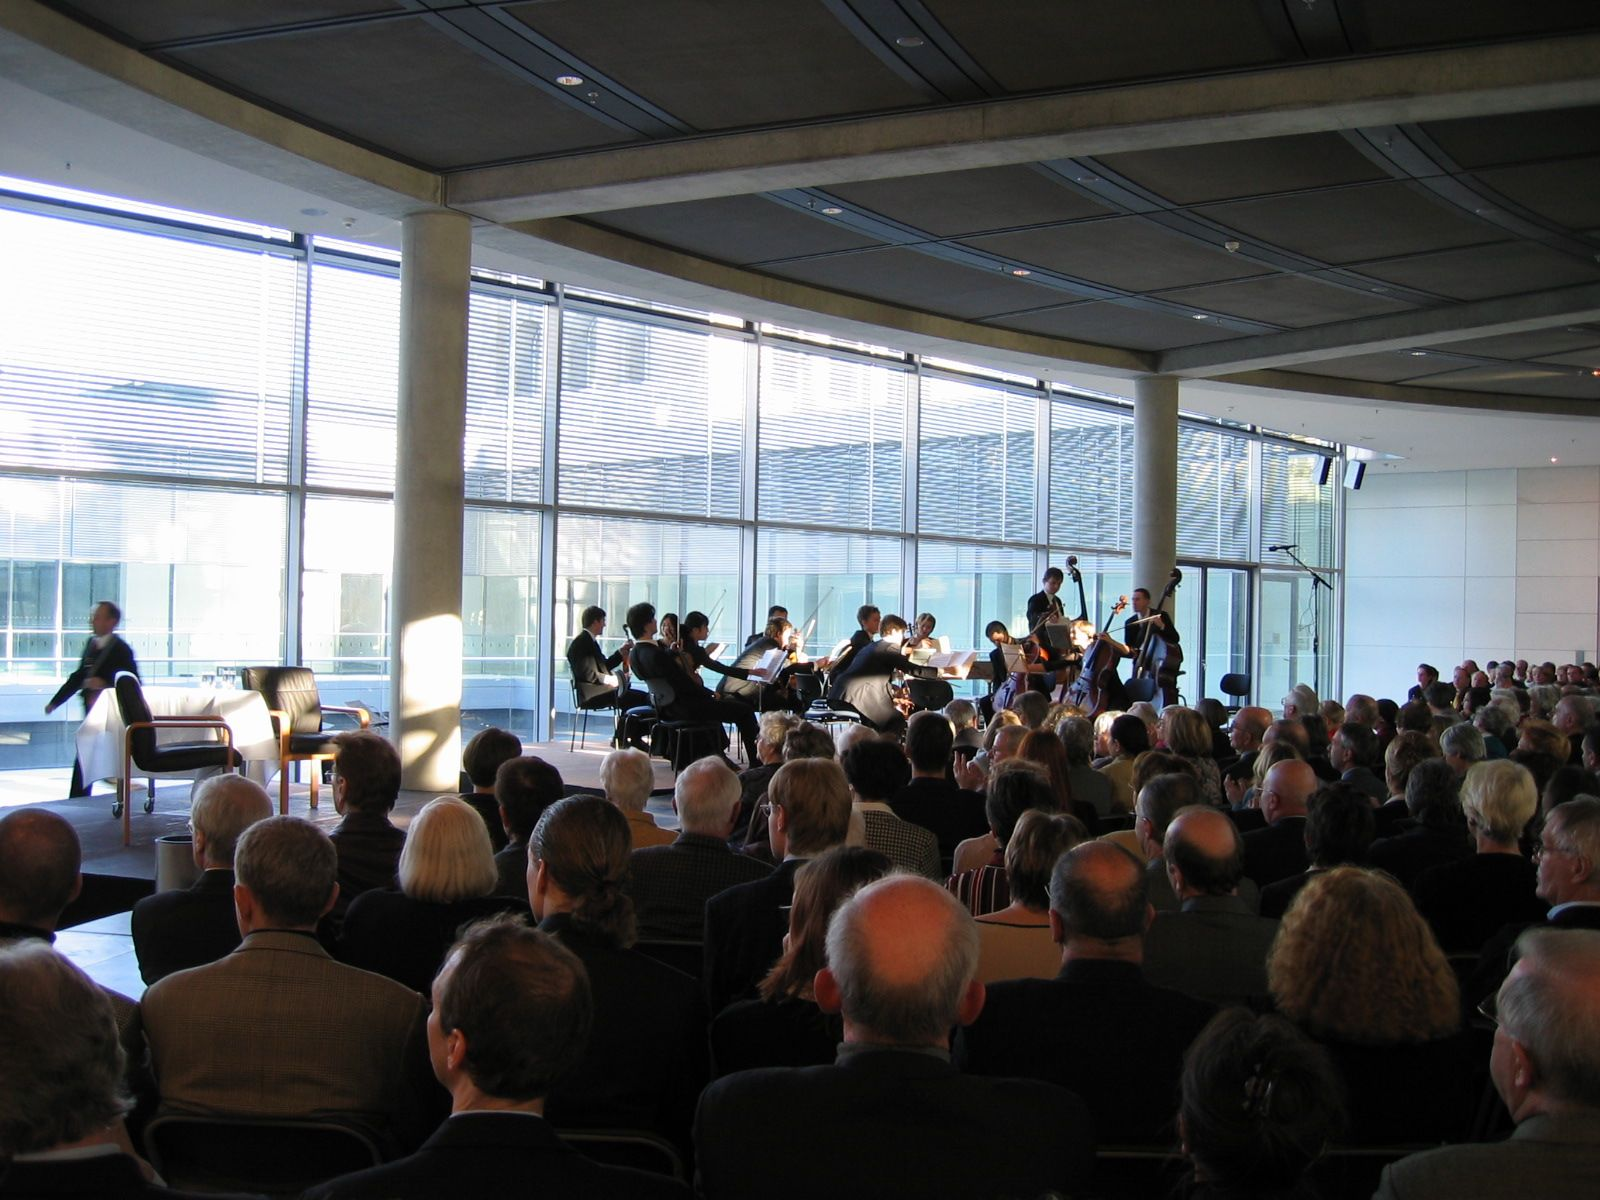 Concert at the newly opened German Bundestag